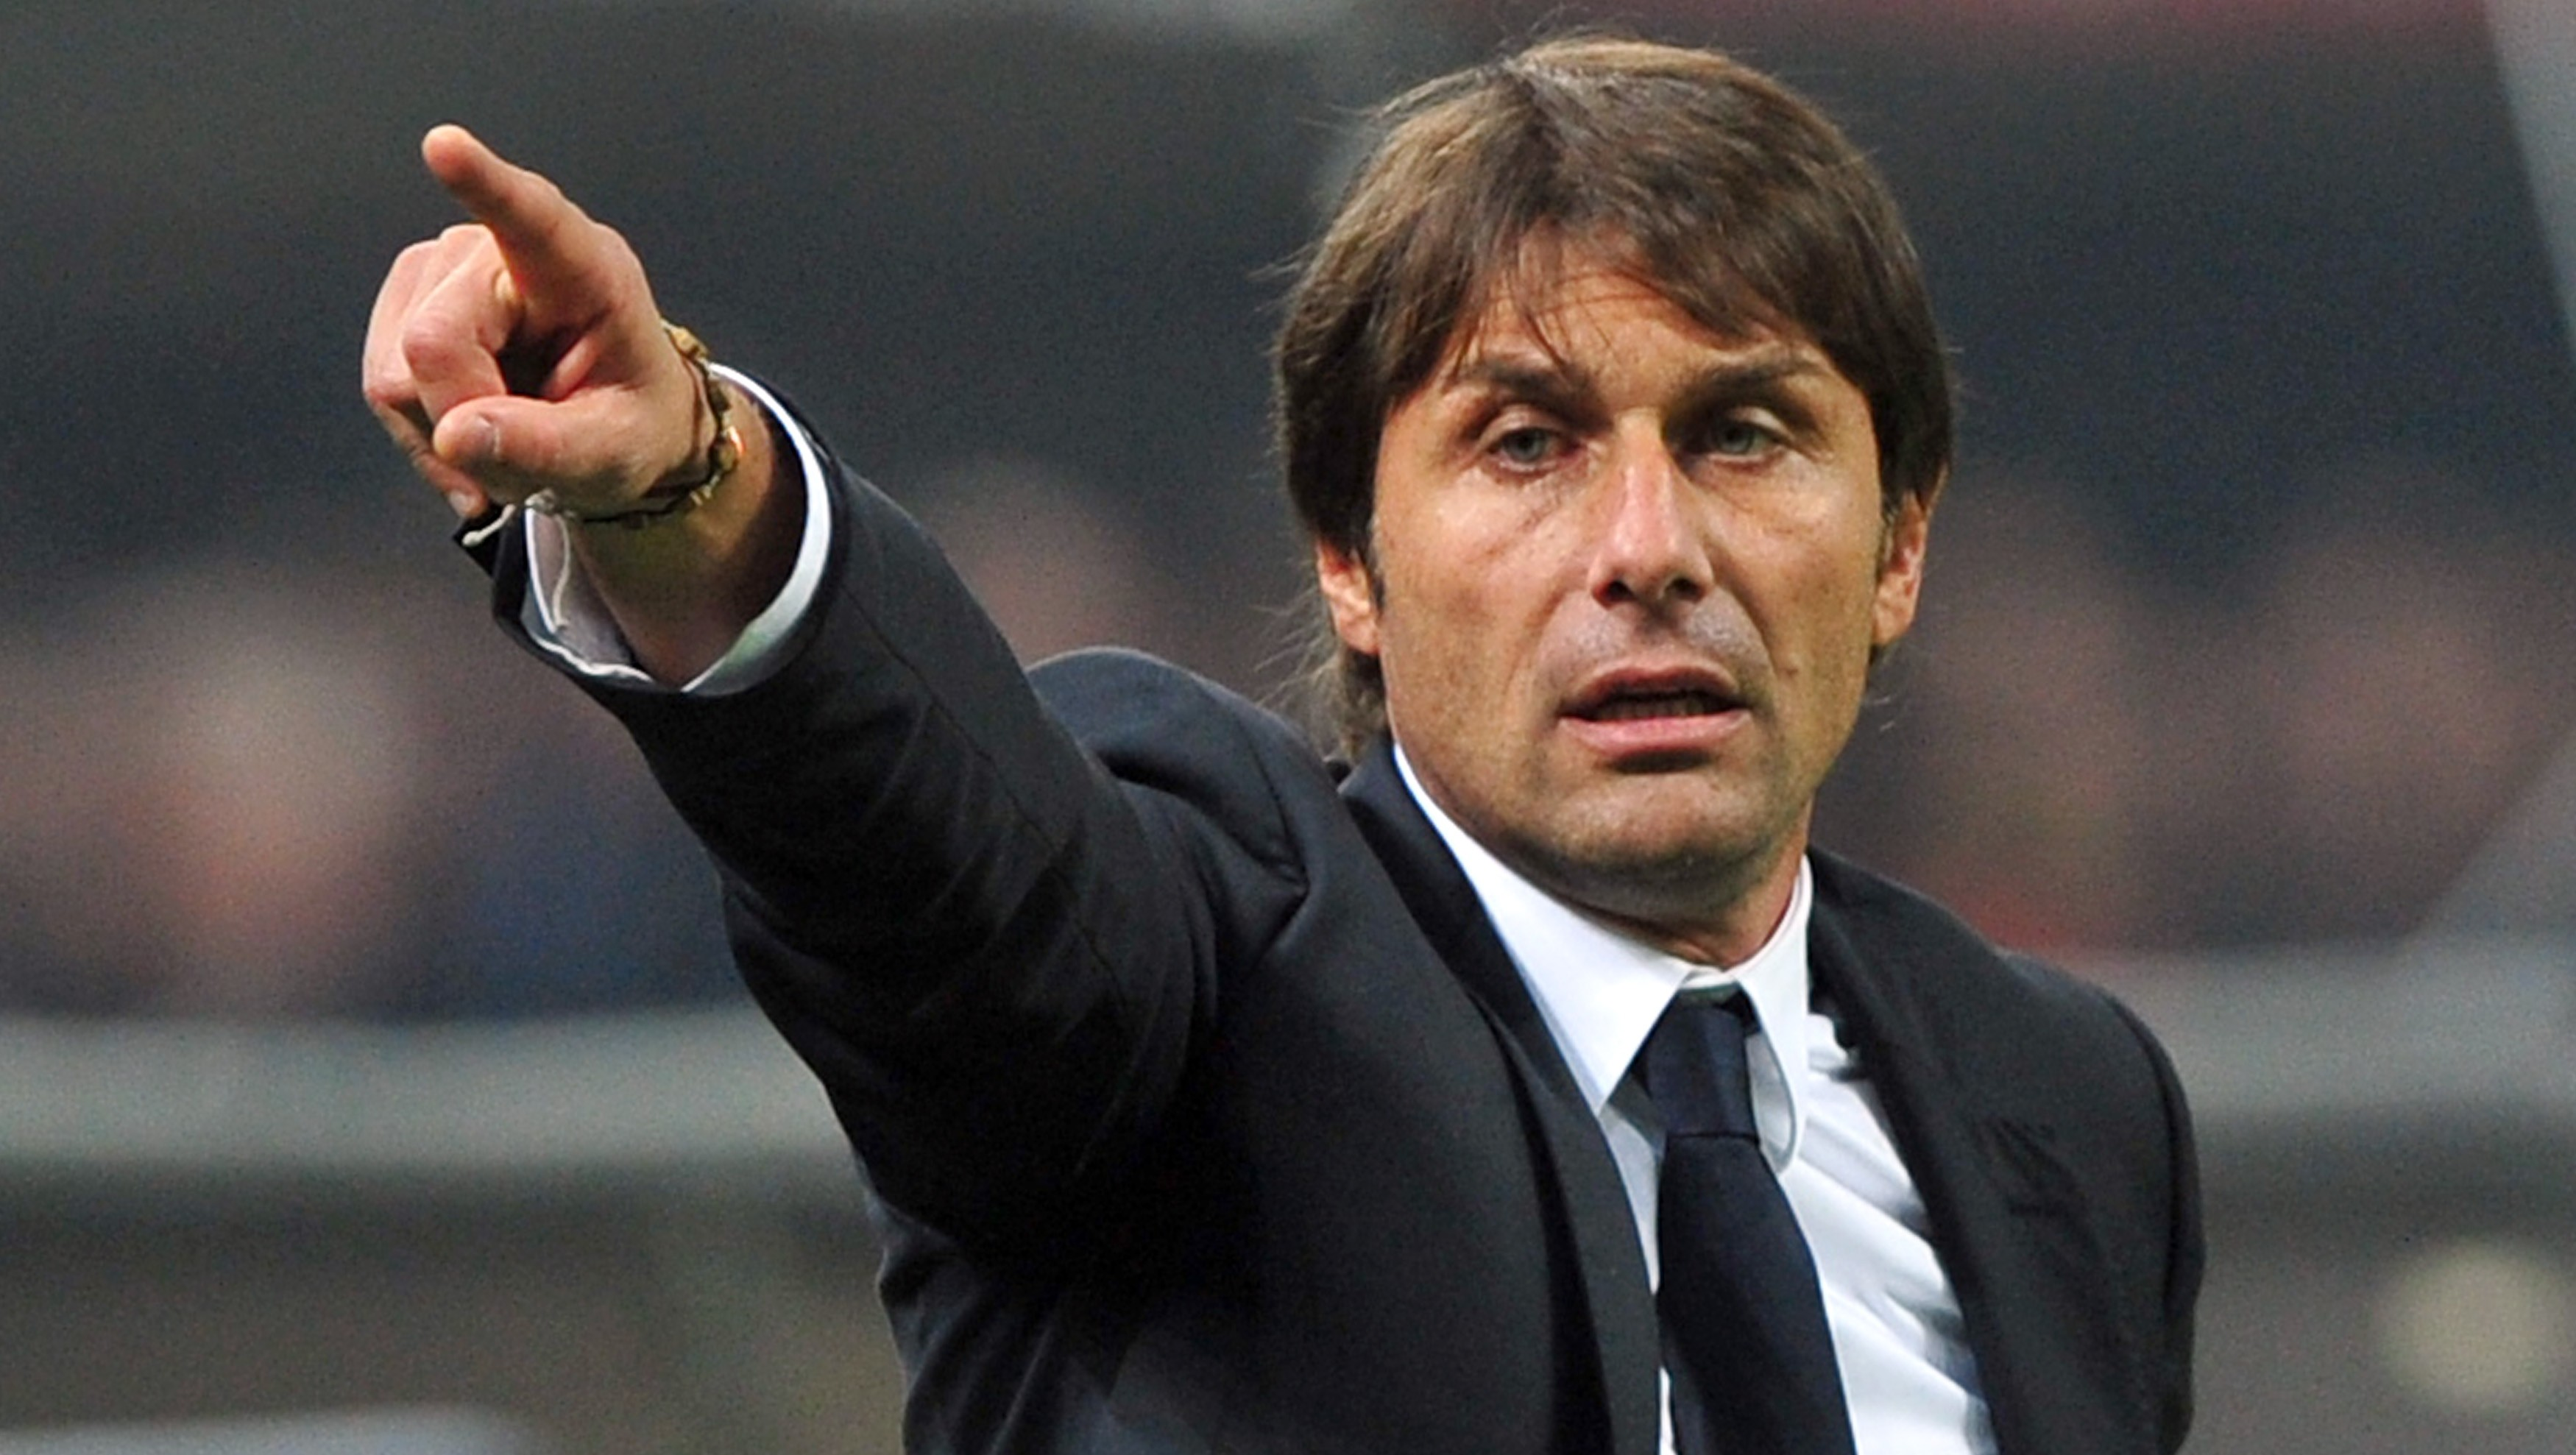 Conte: Italians can take summer holidays outside their homes